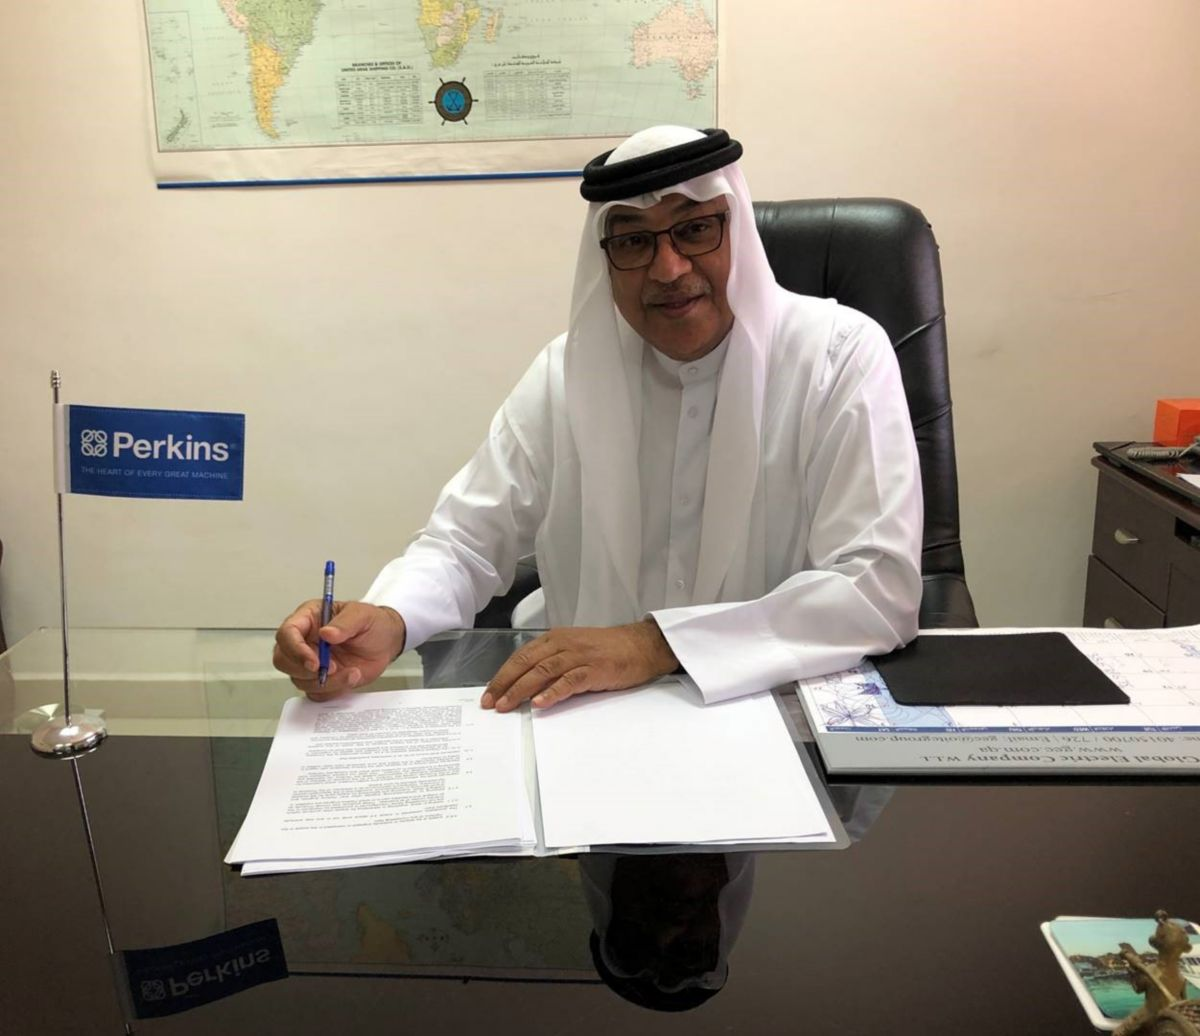 Perkins appoints Obaikan as its distributor for Qatar